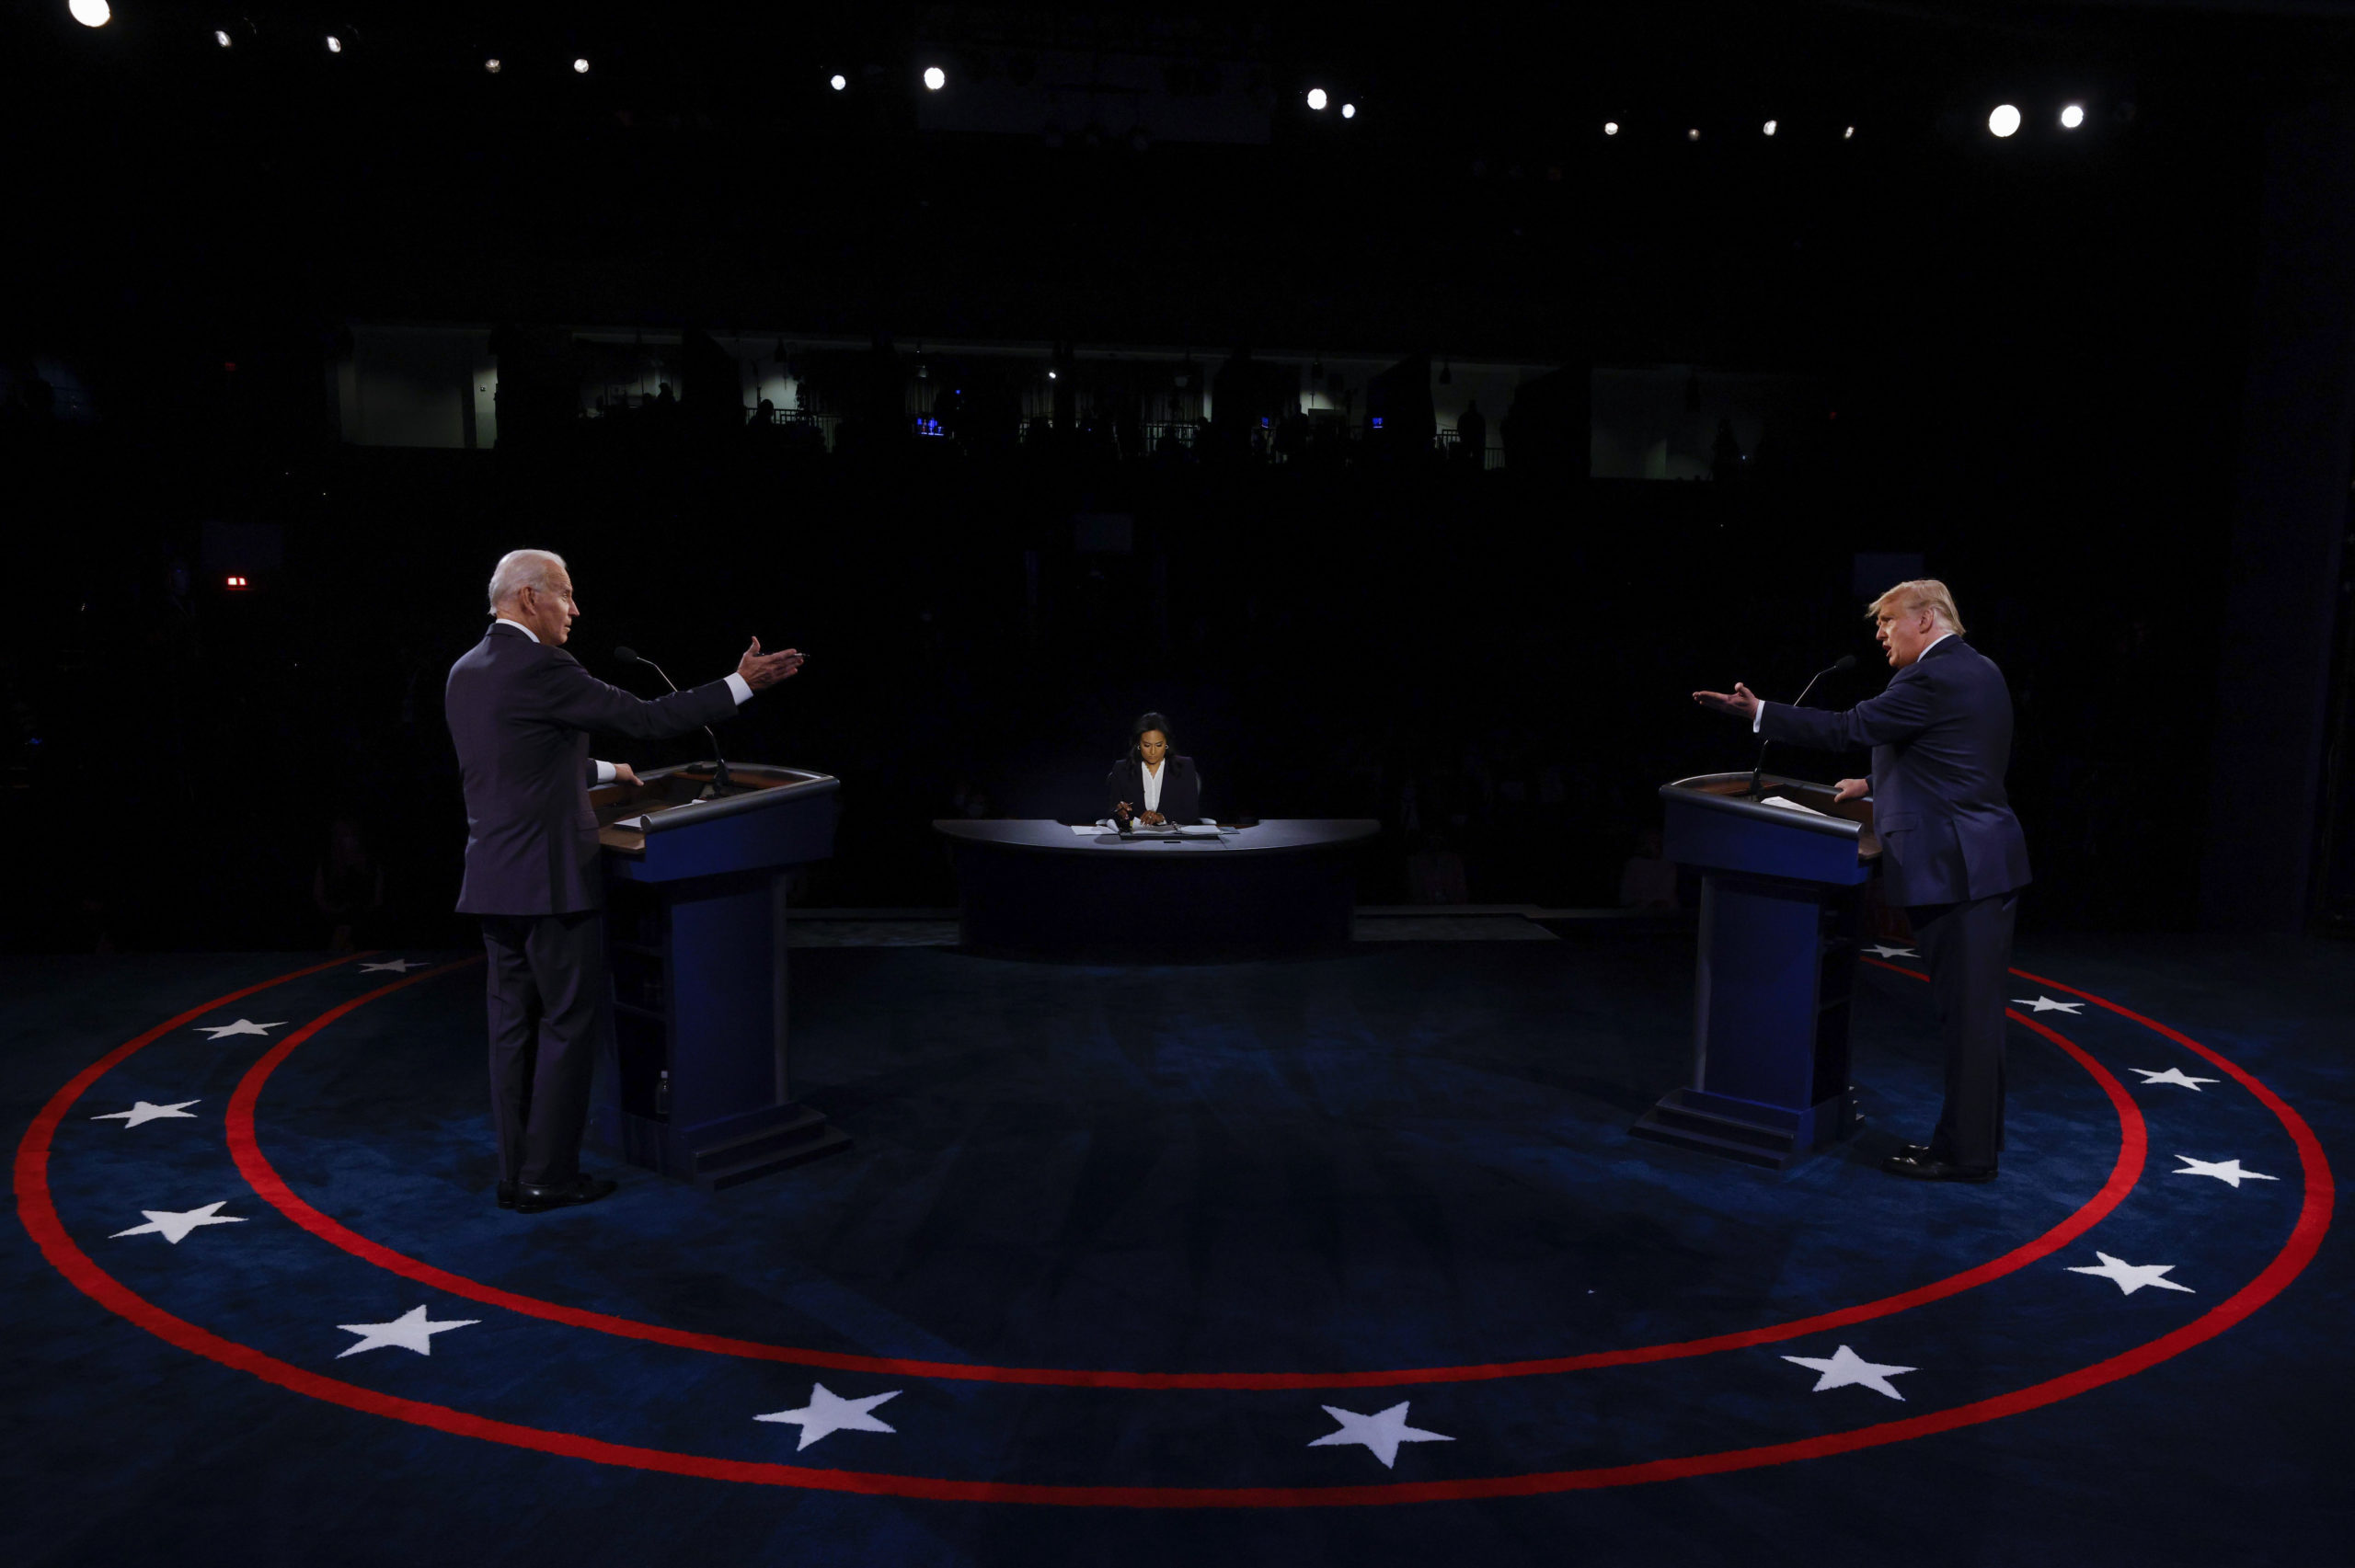 NASHVILLE, TENNESSEE - OCTOBER 22: U.S. President Donald Trump and Democratic presidential nominee Joe Biden participate in the final presidential debate at Belmont University on October 22, 2020 in Nashville, Tennessee. This is the last debate between the two candidates before the November 3 election. (Jim Bourg-Pool/Getty Images)